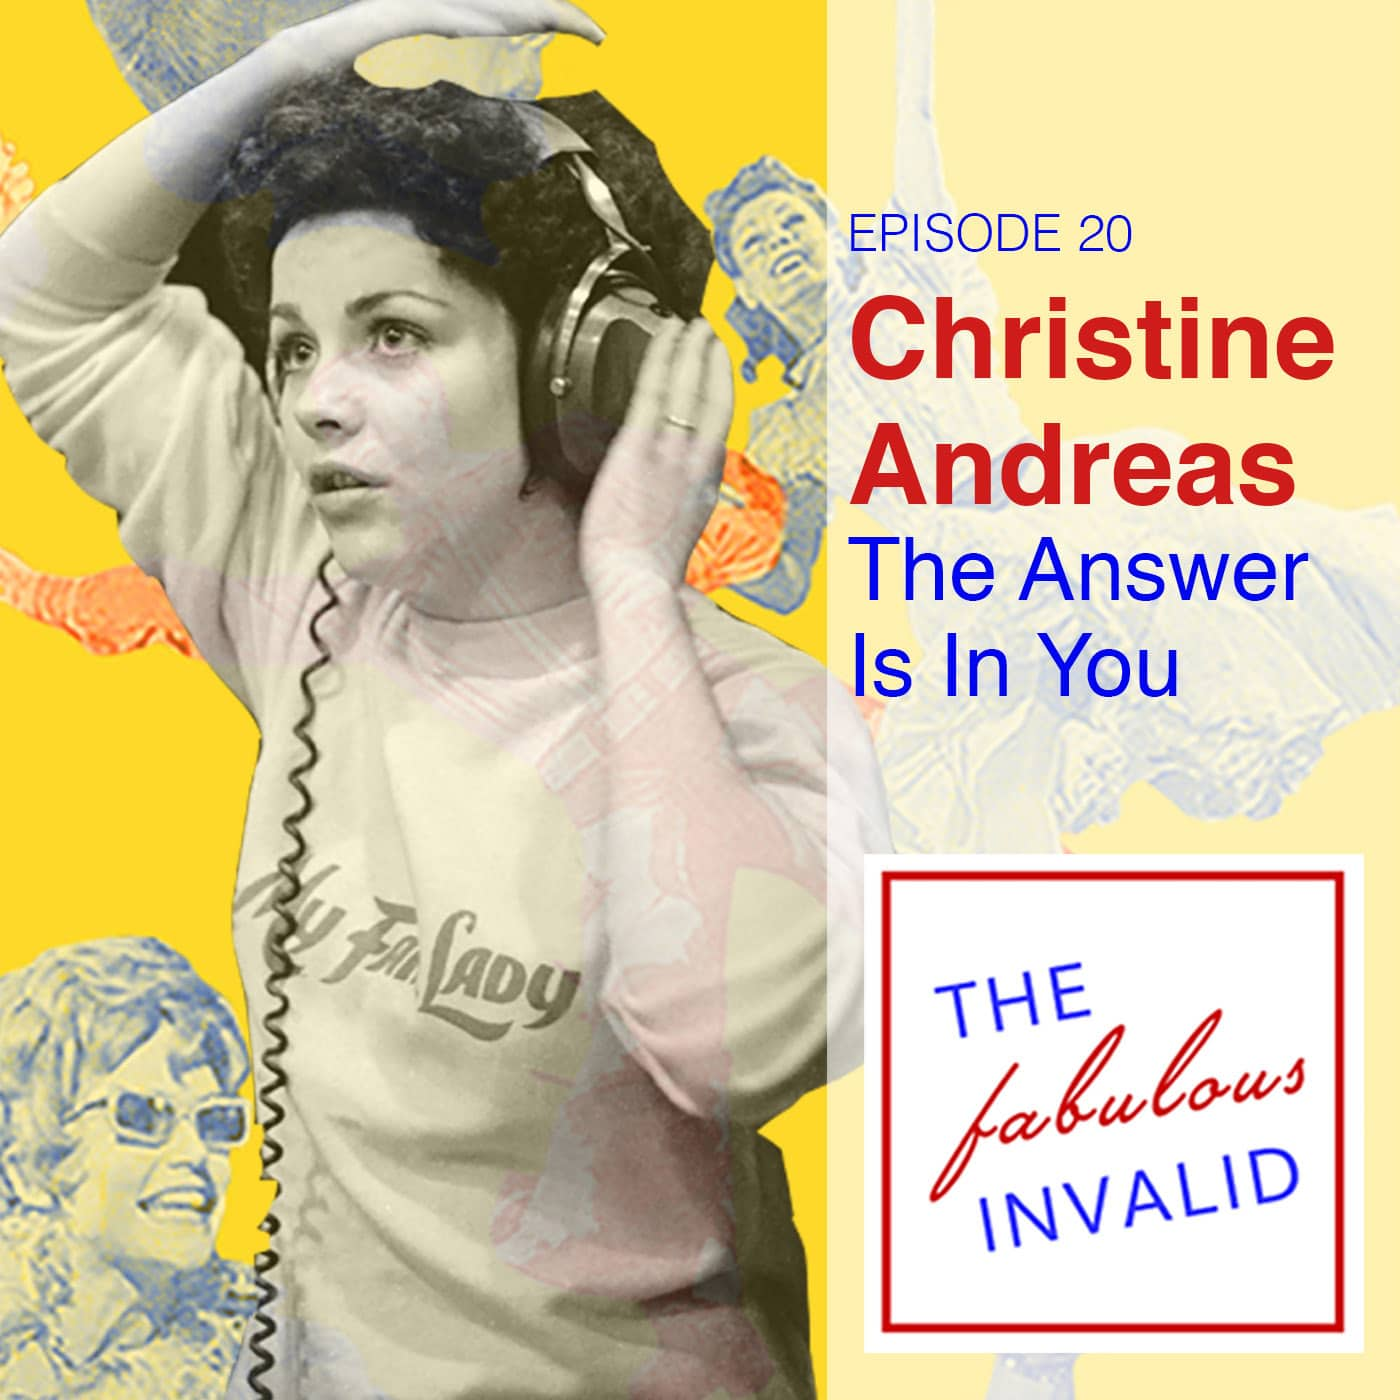 The Fabulous Invalid Ep 20 Christine Andreas